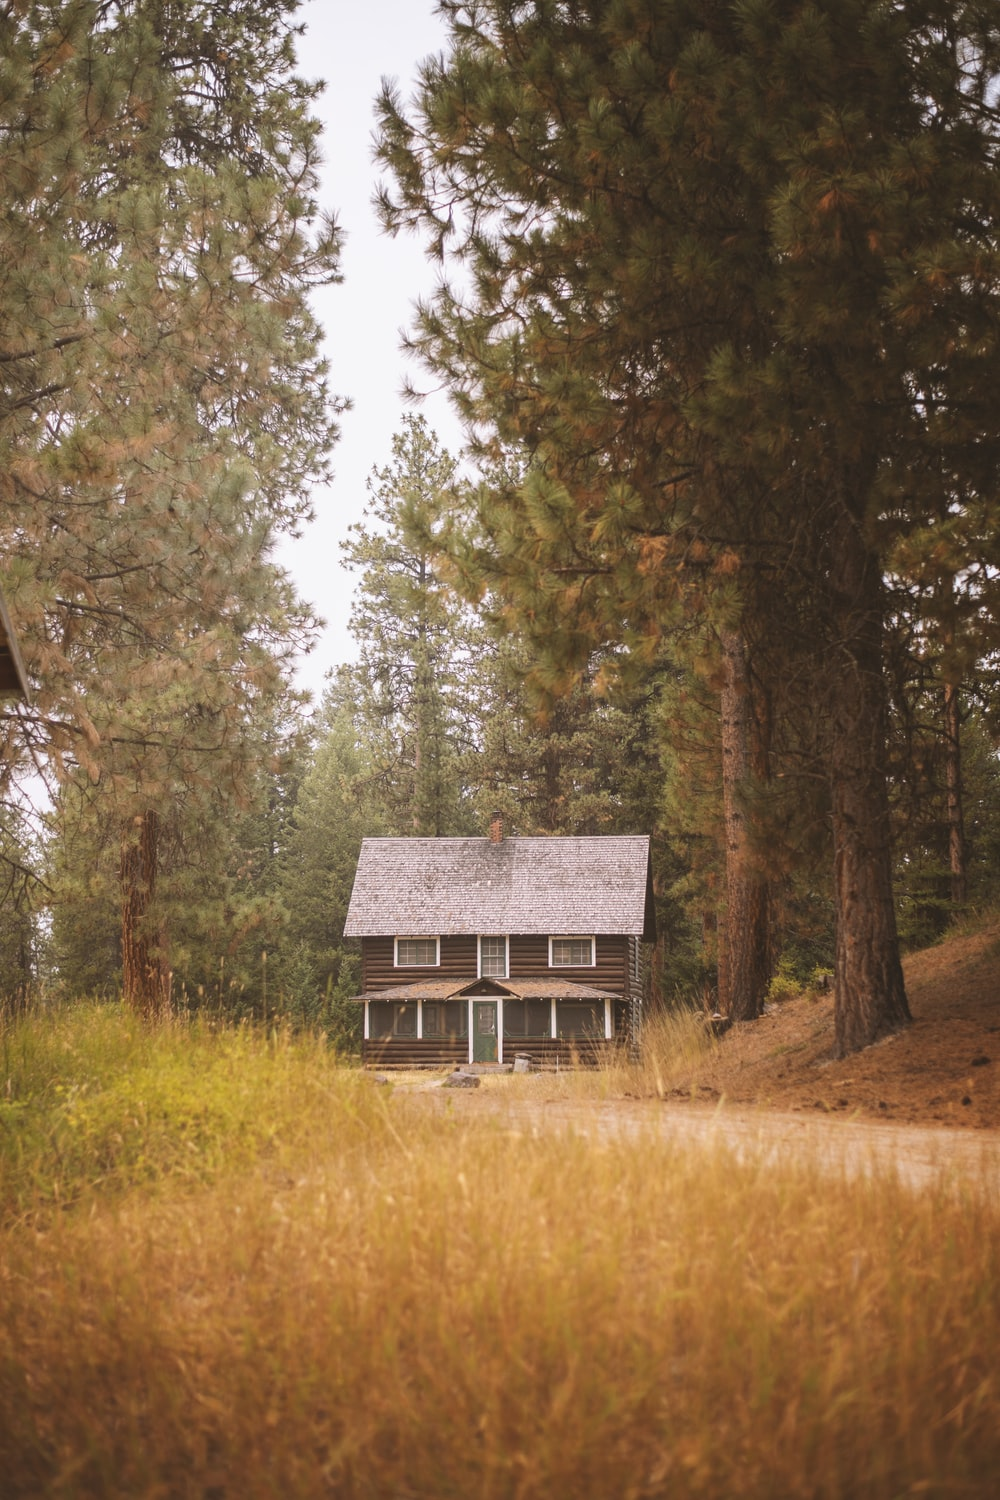 brown wooden house in the middle of forest during daytime